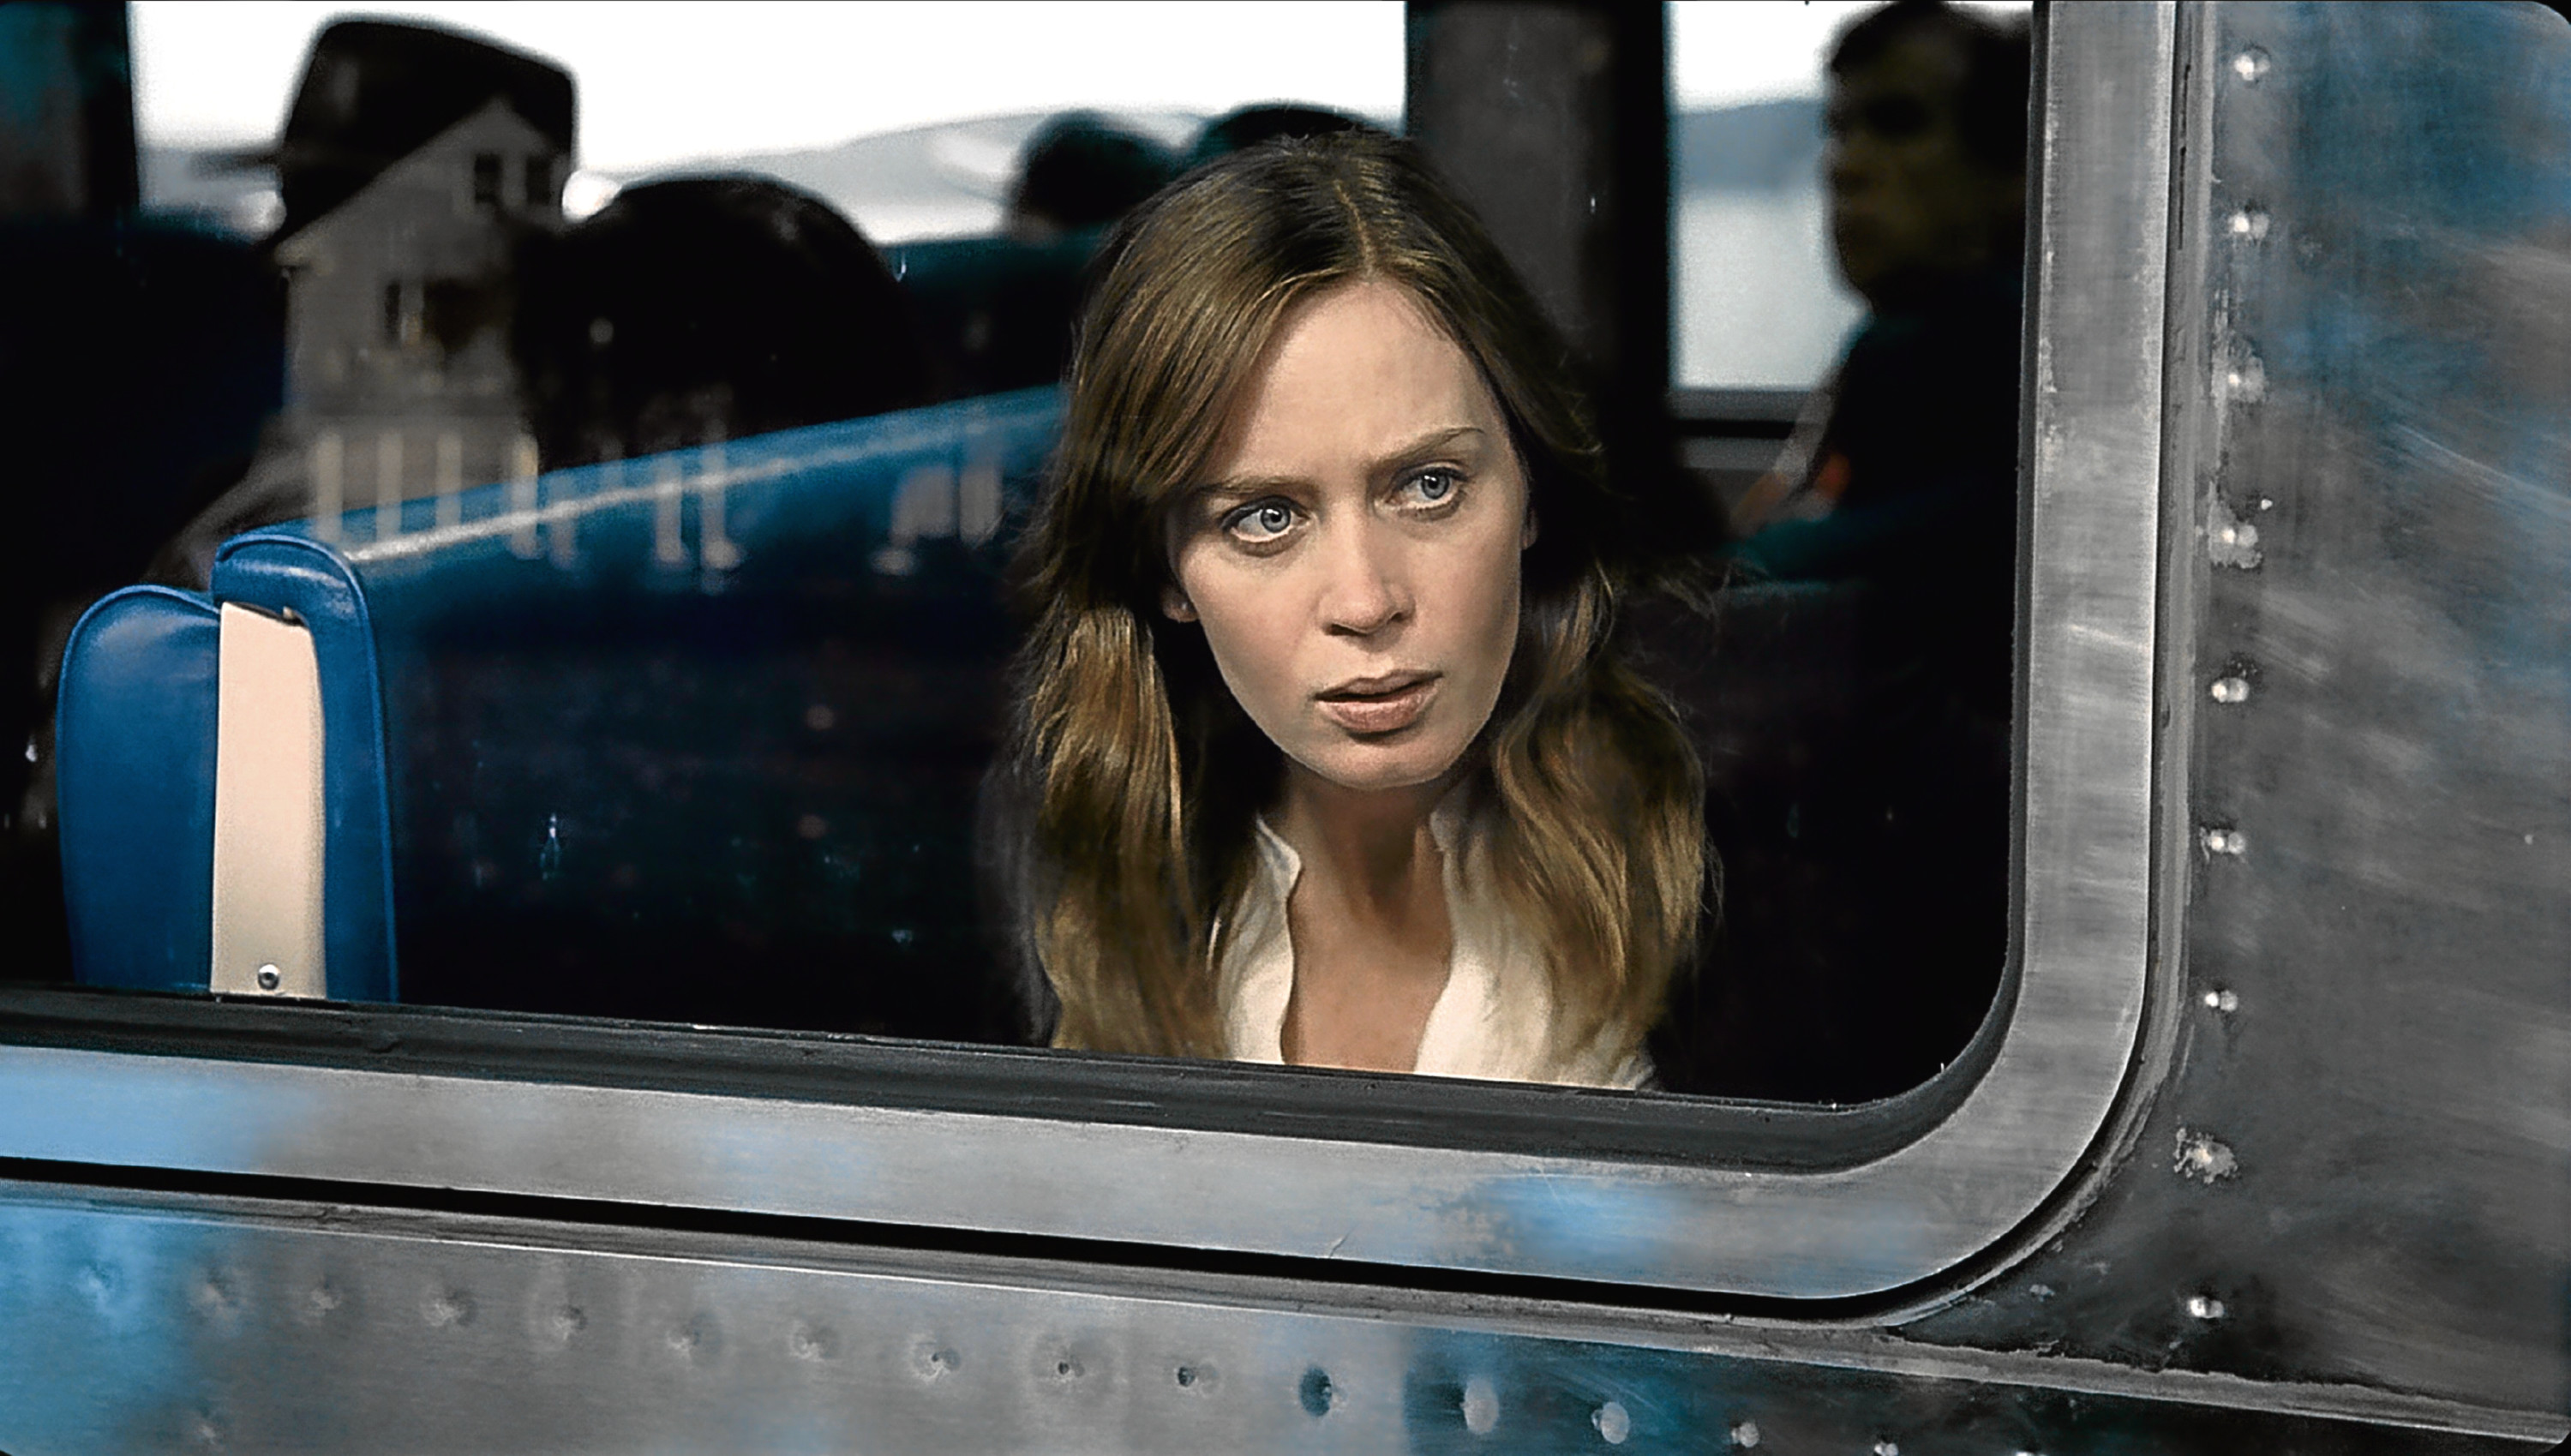 EMILY BLUNT Character(s): Rachel Watson Film 'THE GIRL ON THE TRAIN' (2016) Directed By TATE TAYLOR 05 October 2016 SAQ64312 Allstar/DREAMWORKS SKG  (USA 2016)  **WARNING** This Photograph is for editorial use only and is the copyright of DREAMWORKS SKG  and/or the Photographer assigned by the Film or Production Company & can only be reproduced by publications in conjunction with the promotion of the above Film. A Mandatory Credit To DREAMWORKS SKG is required. The Photographer should also be credited when known. No commercial use can be granted without written authority from the Film Company.